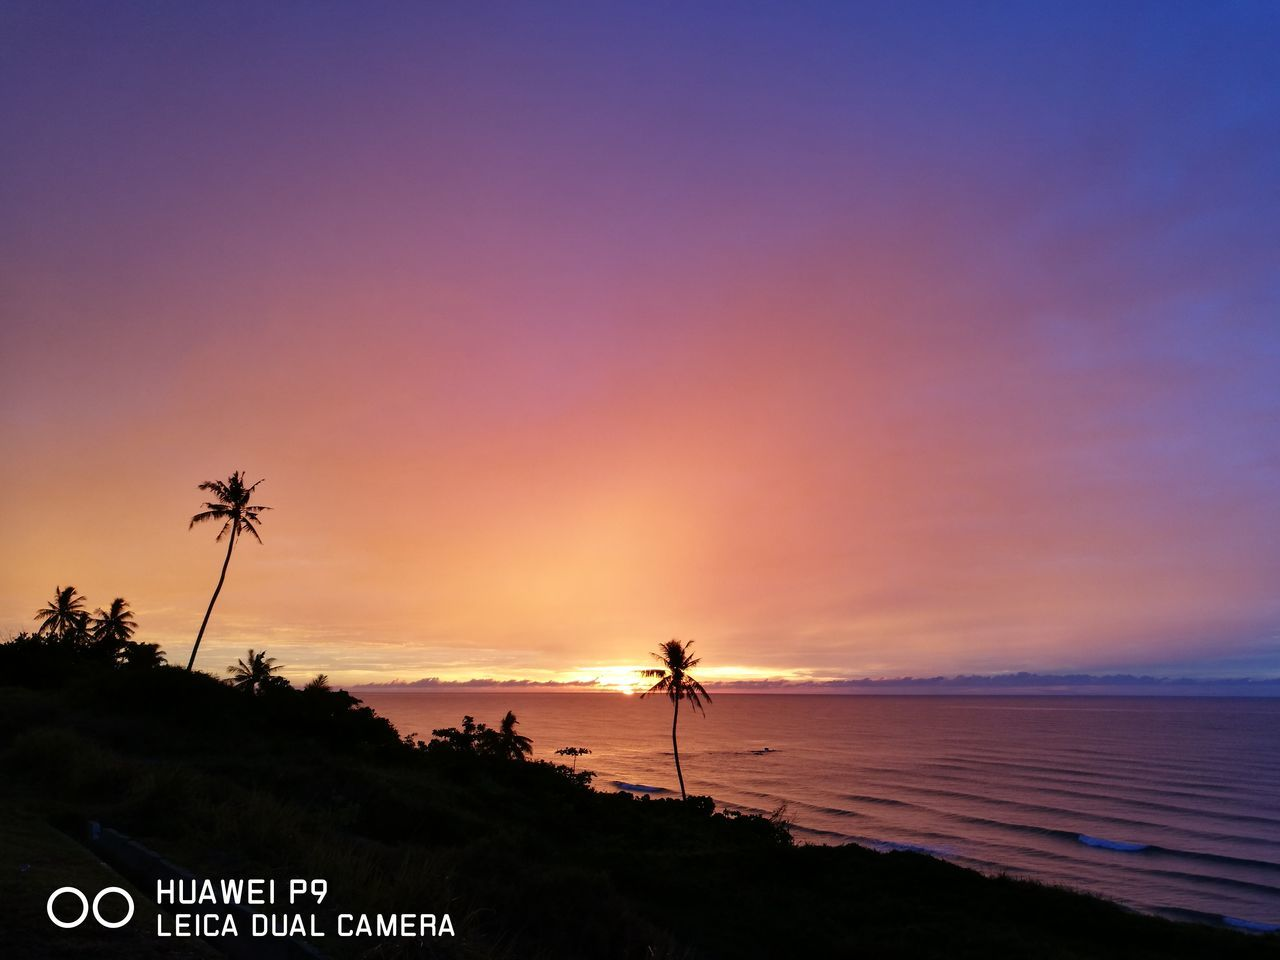 sunset, palm tree, sea, beauty in nature, beach, scenics, silhouette, nature, tranquil scene, tranquility, outdoors, sky, tree, horizon over water, growth, vacations, no people, water, day